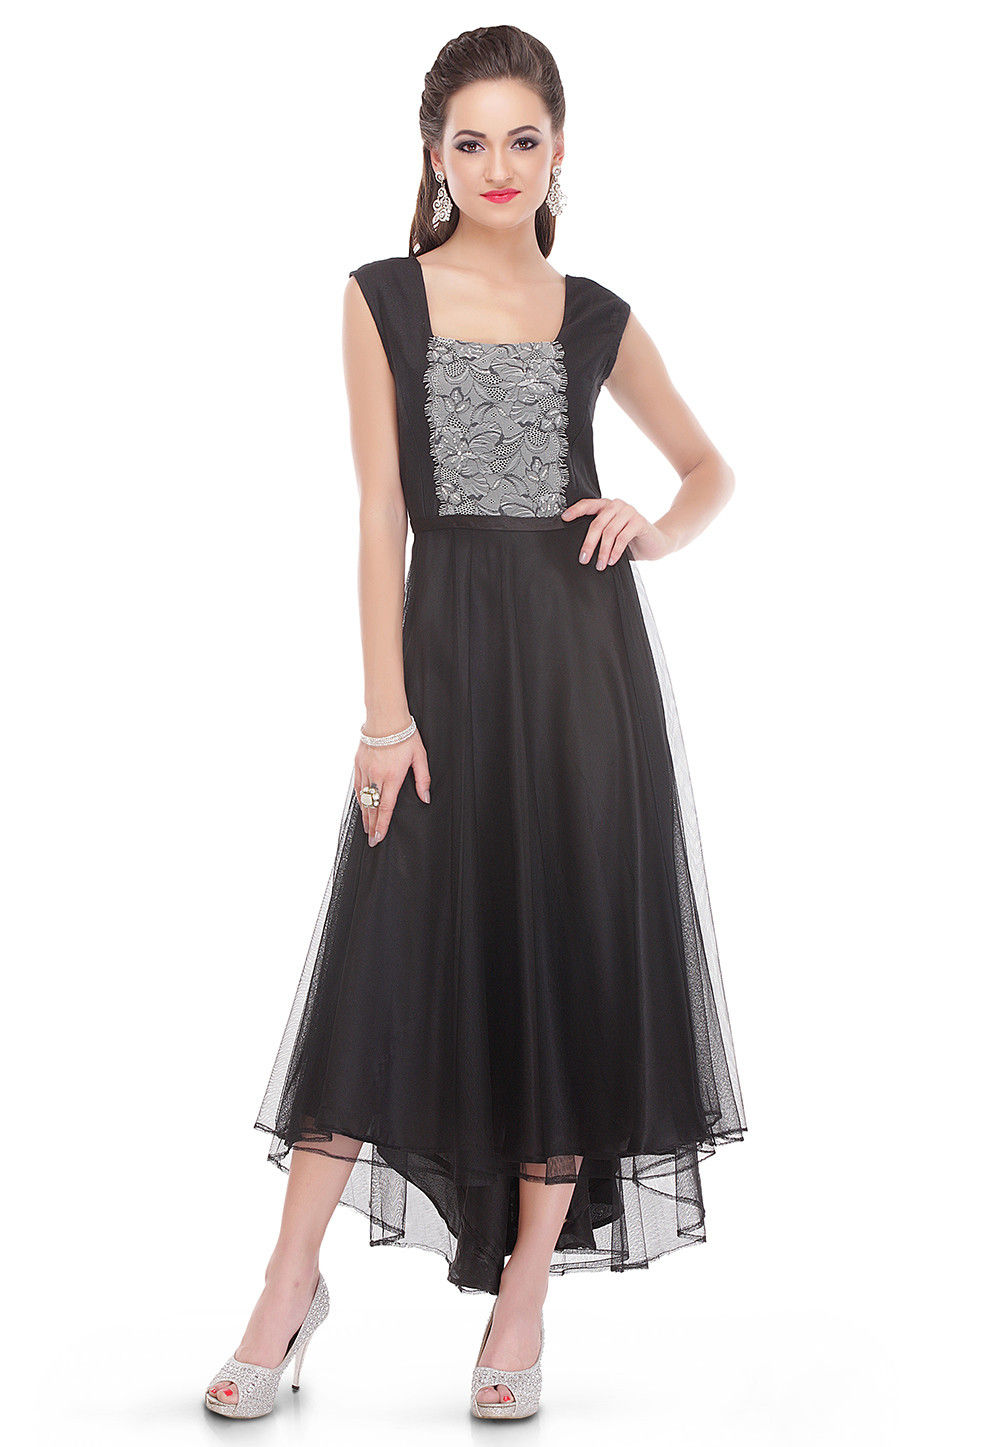 Embroidered Net Dress in Black